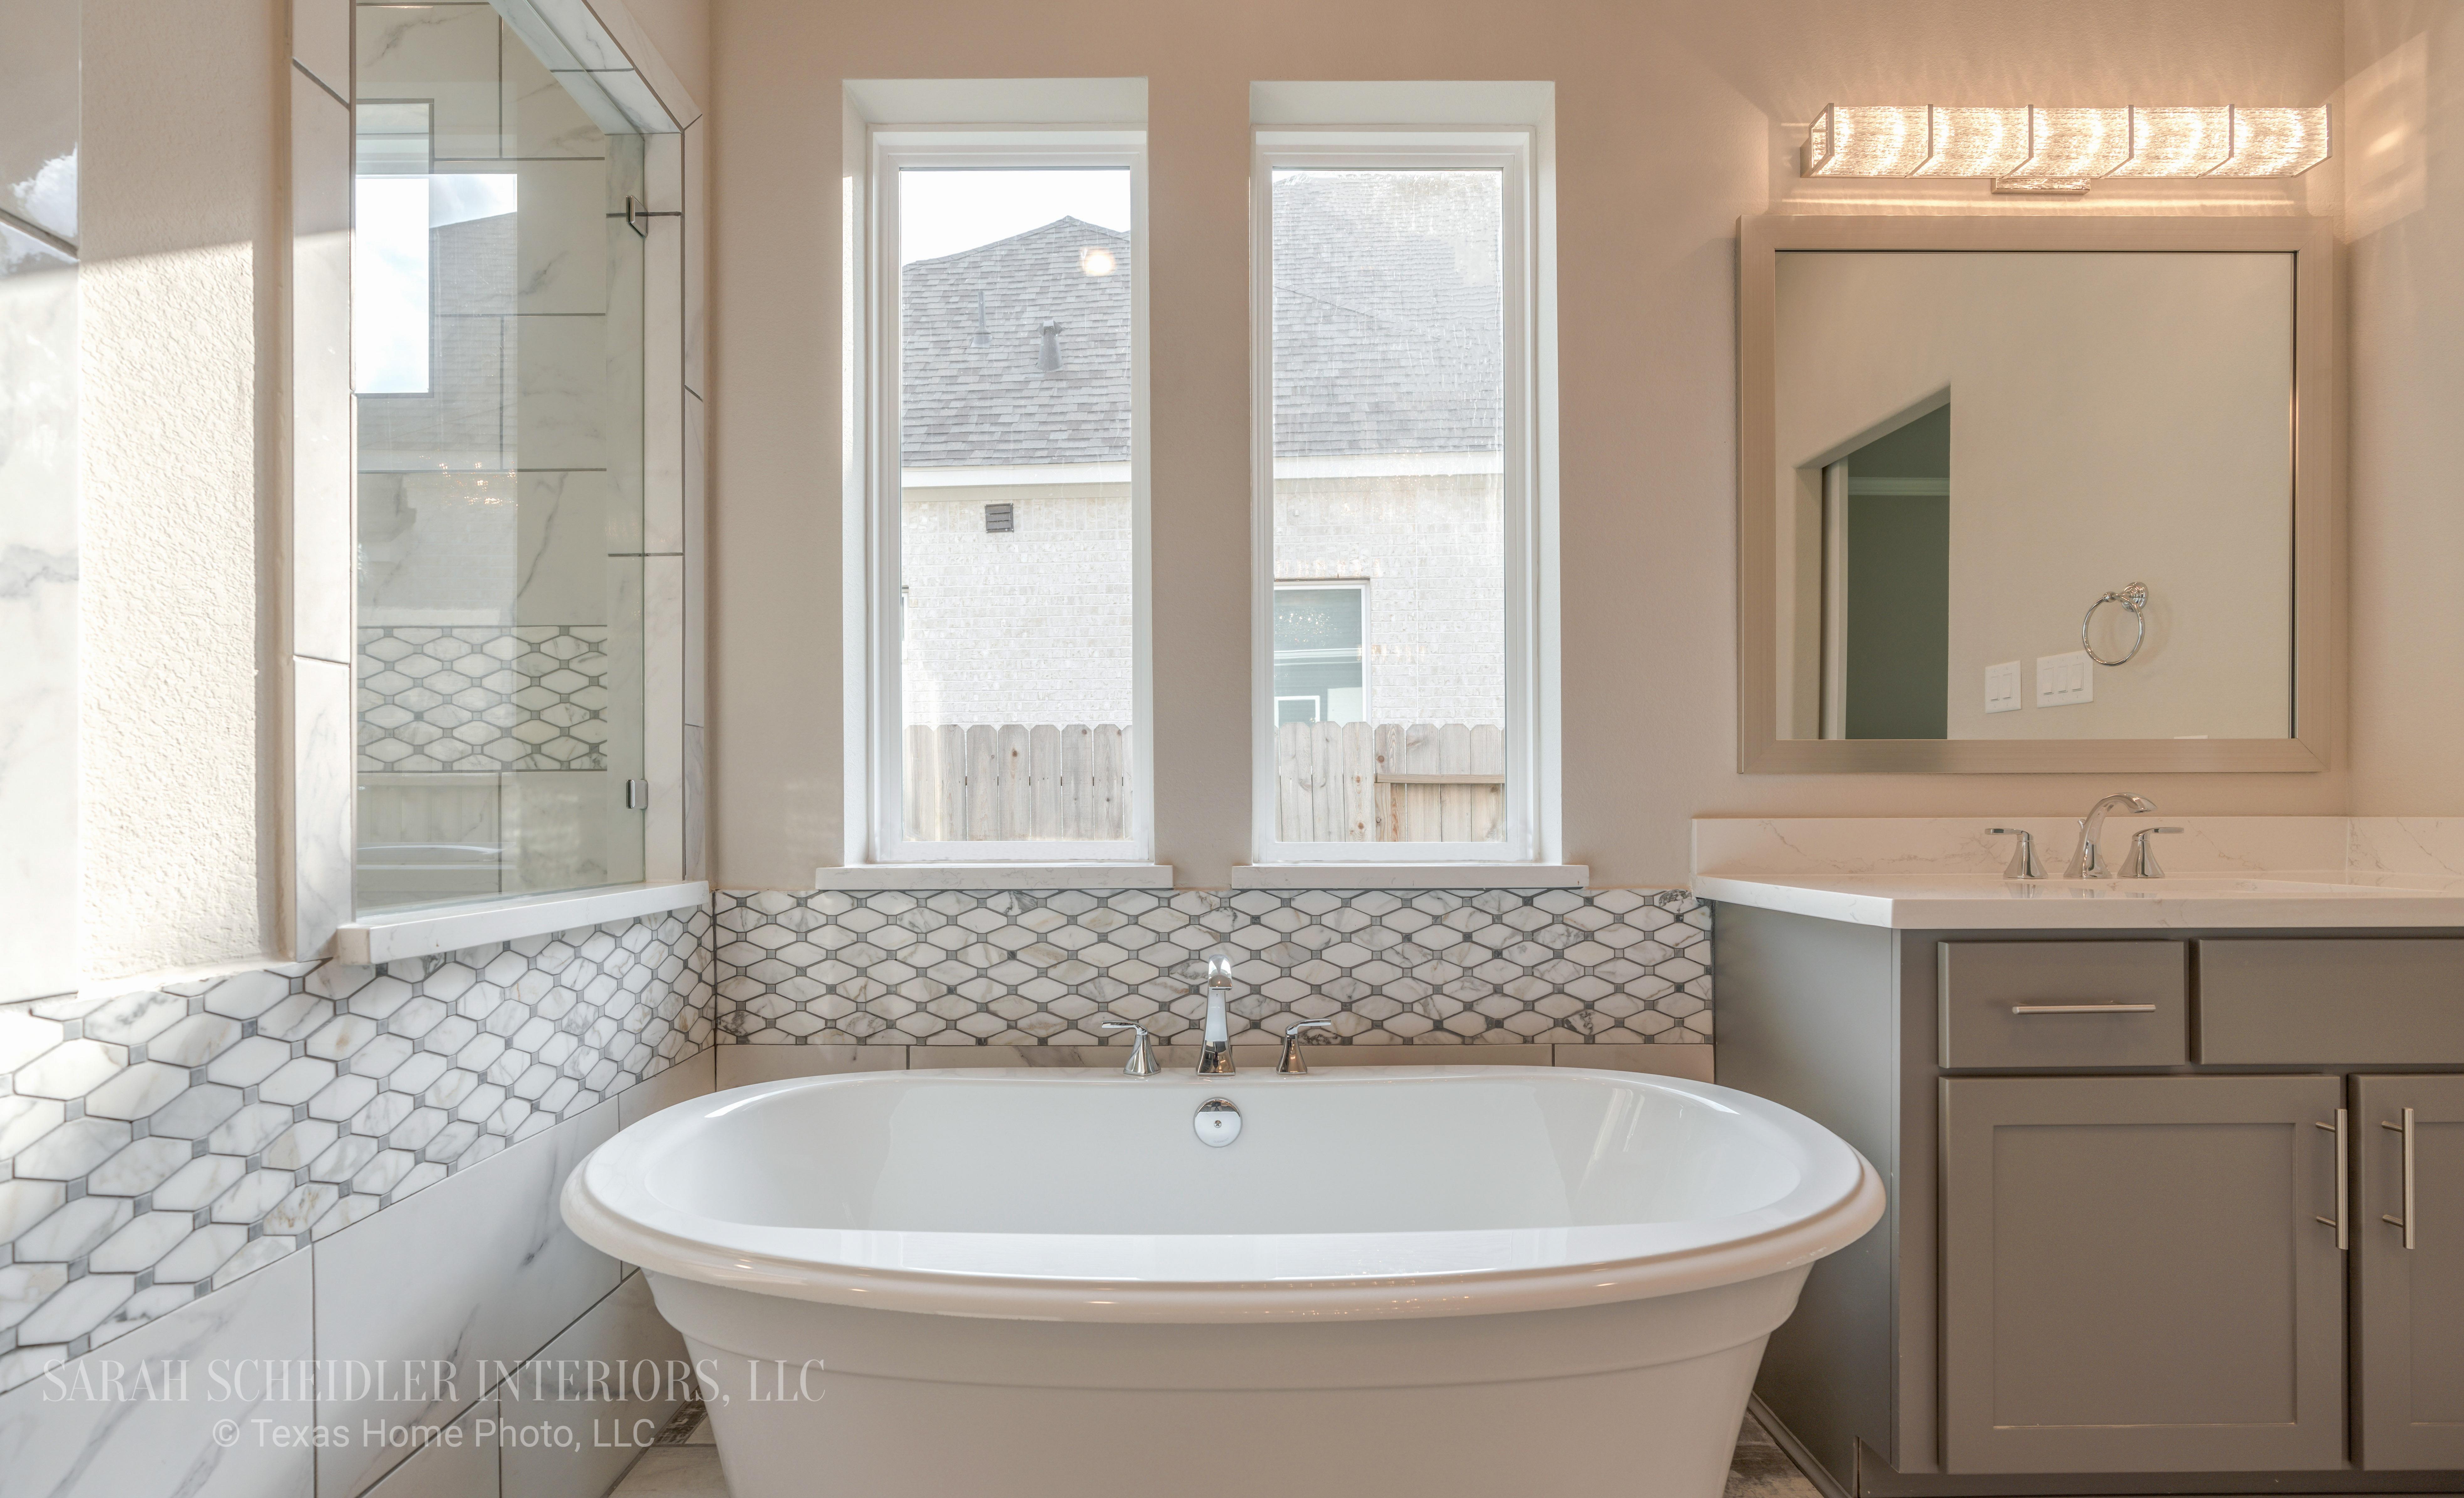 White and Grey Primary Bathroom with Freestanding Tub, Grey Cabinetry, Marble Wall Accent Tile, Wood Tile Flooring, Chrome Finishes, and Crystal Lighting